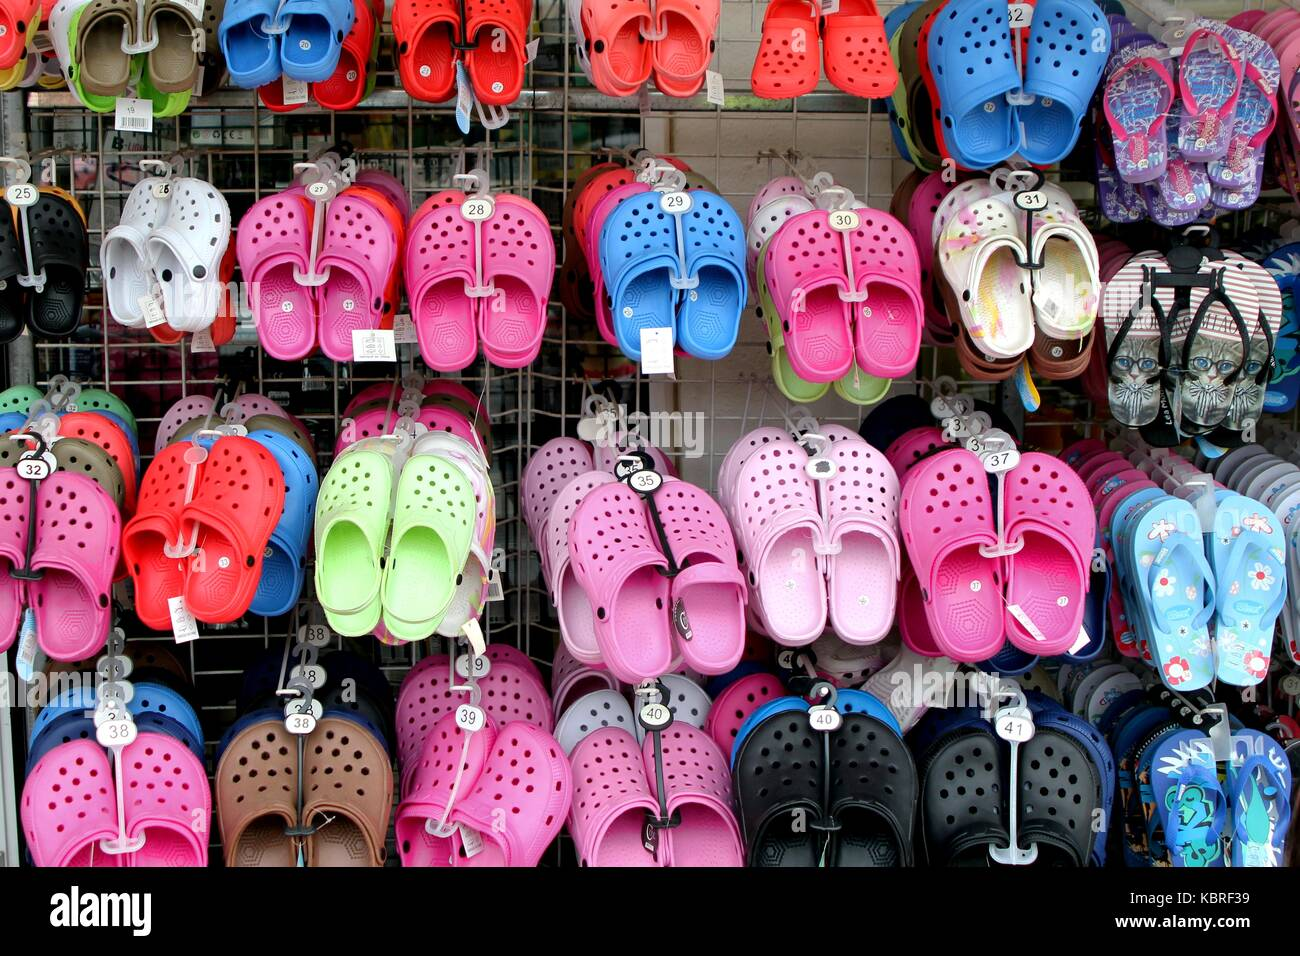 4d6d23c0c4f6b Rack with lots of pairs of childrens soft rubber sandals or  Crocs  in  various